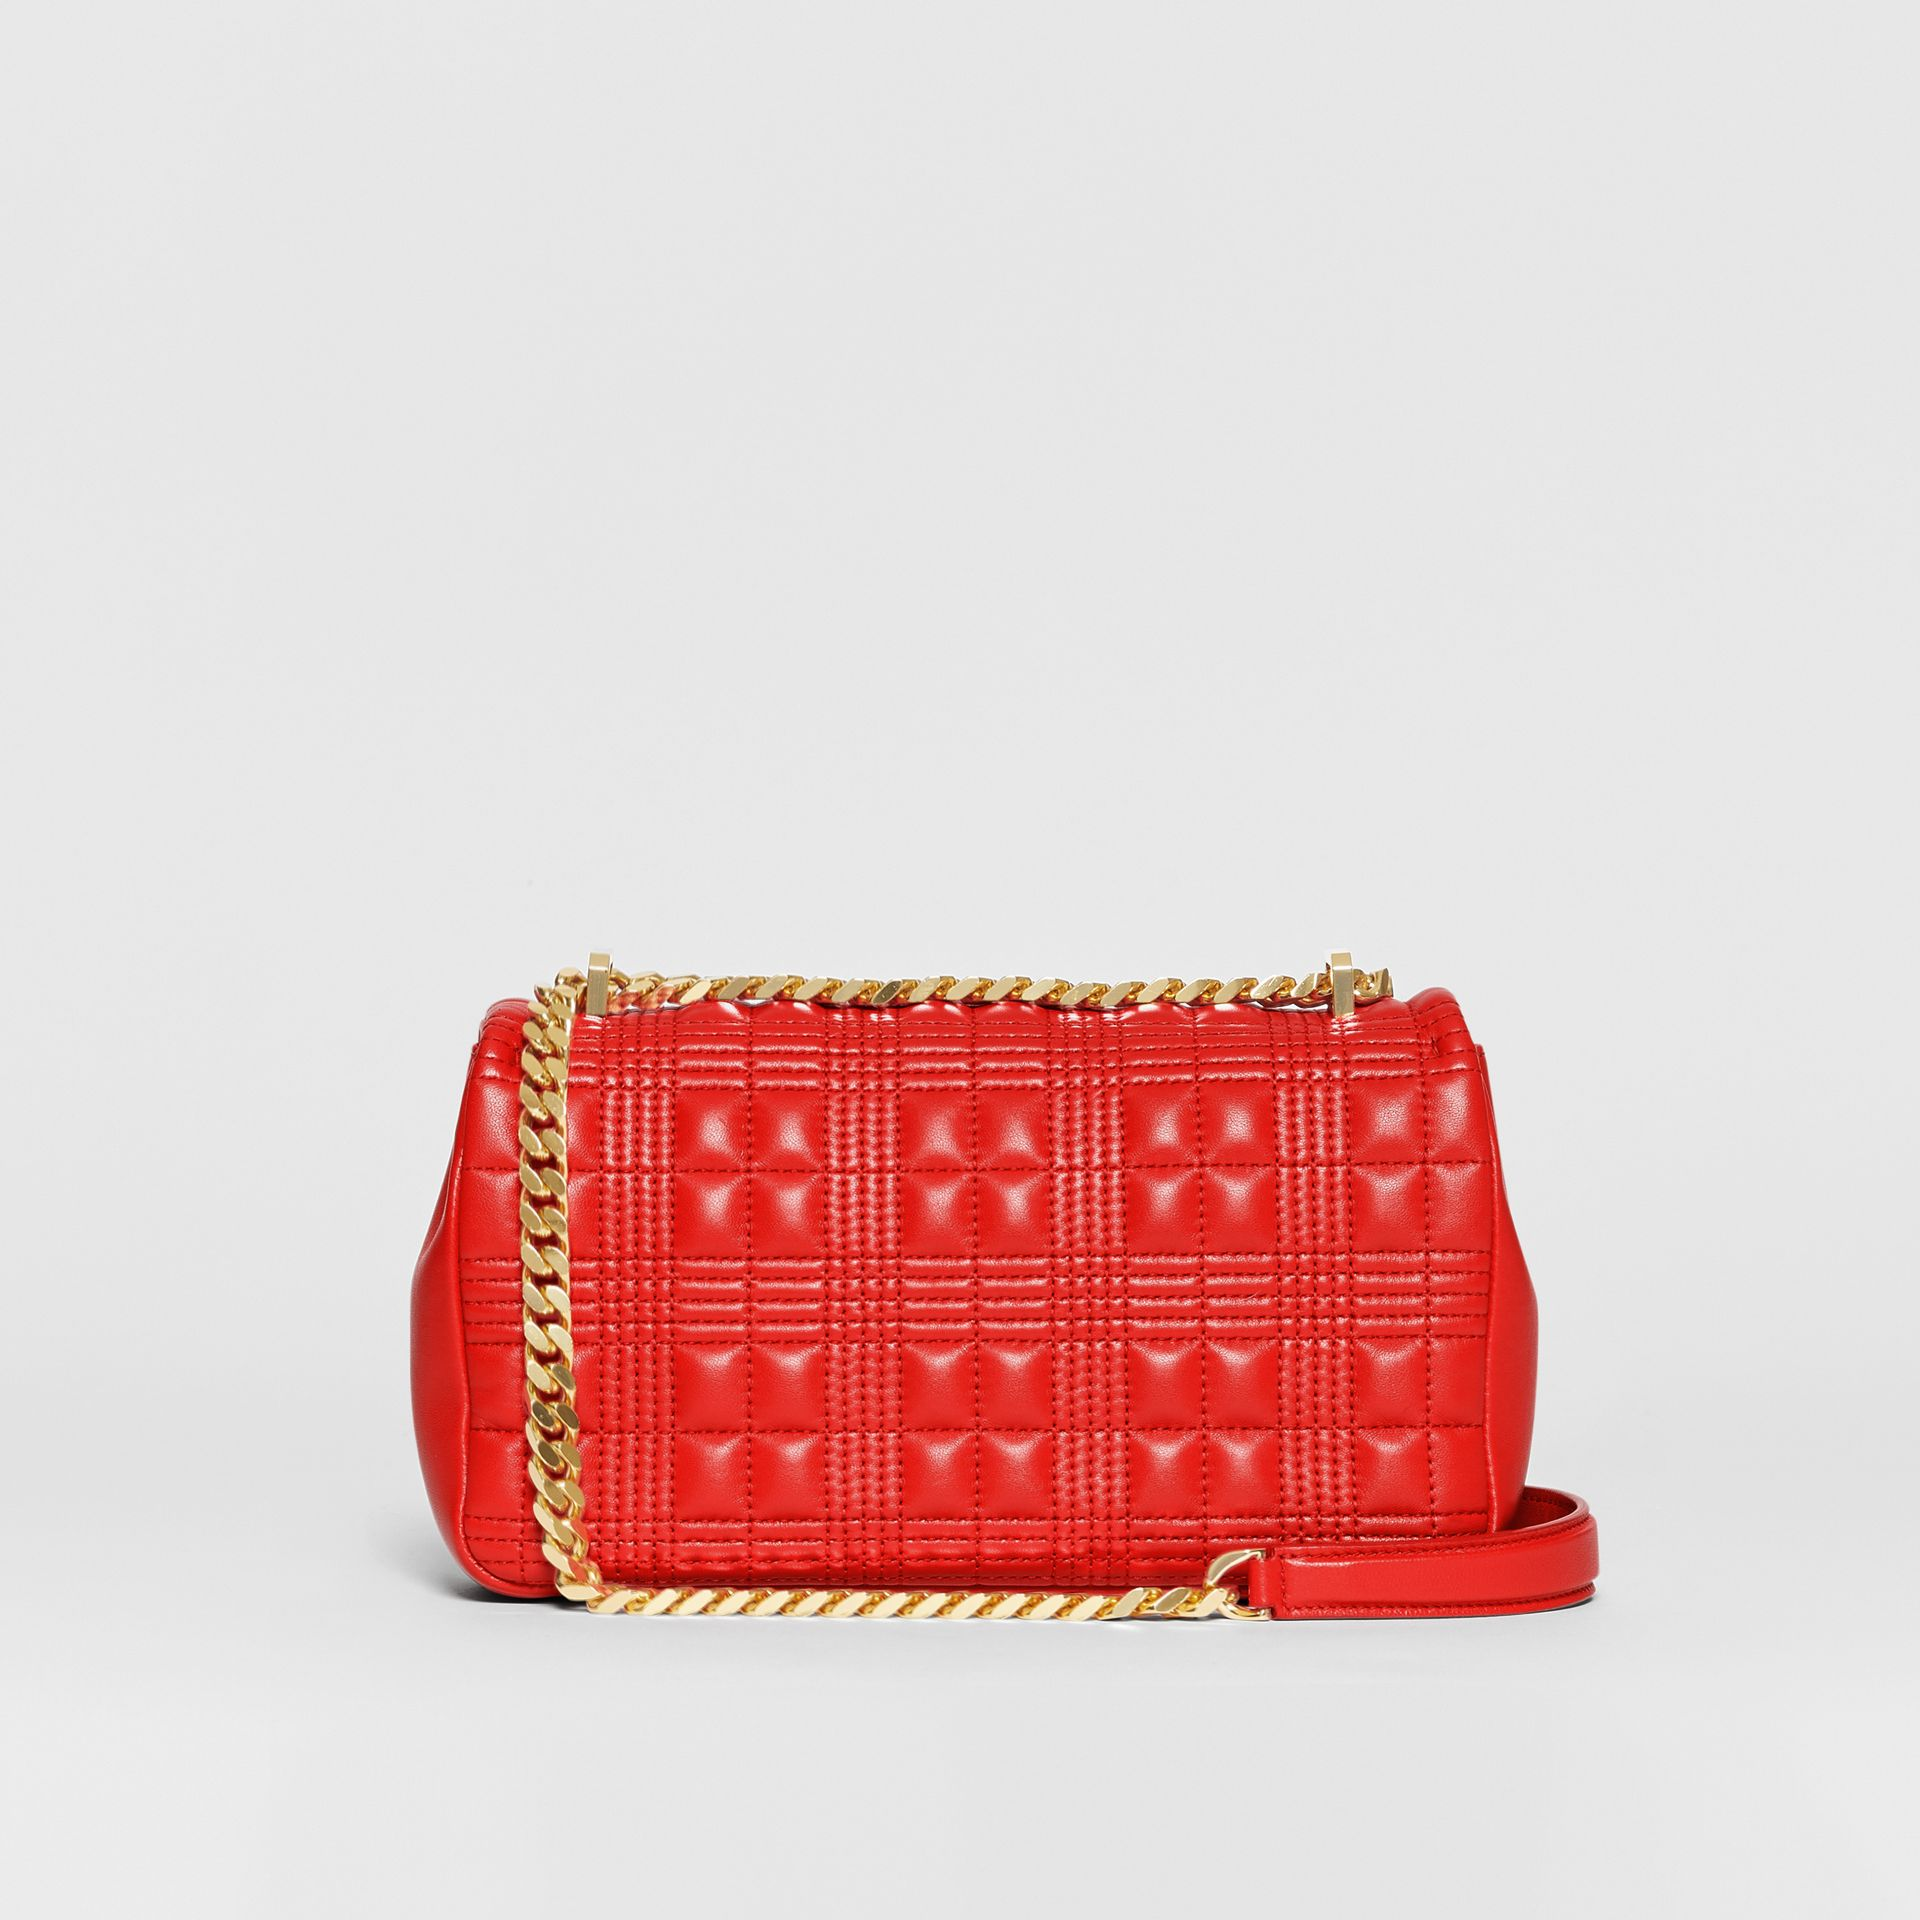 Small Quilted Lambskin Lola Bag in Bright Red - Women | Burberry - gallery image 7